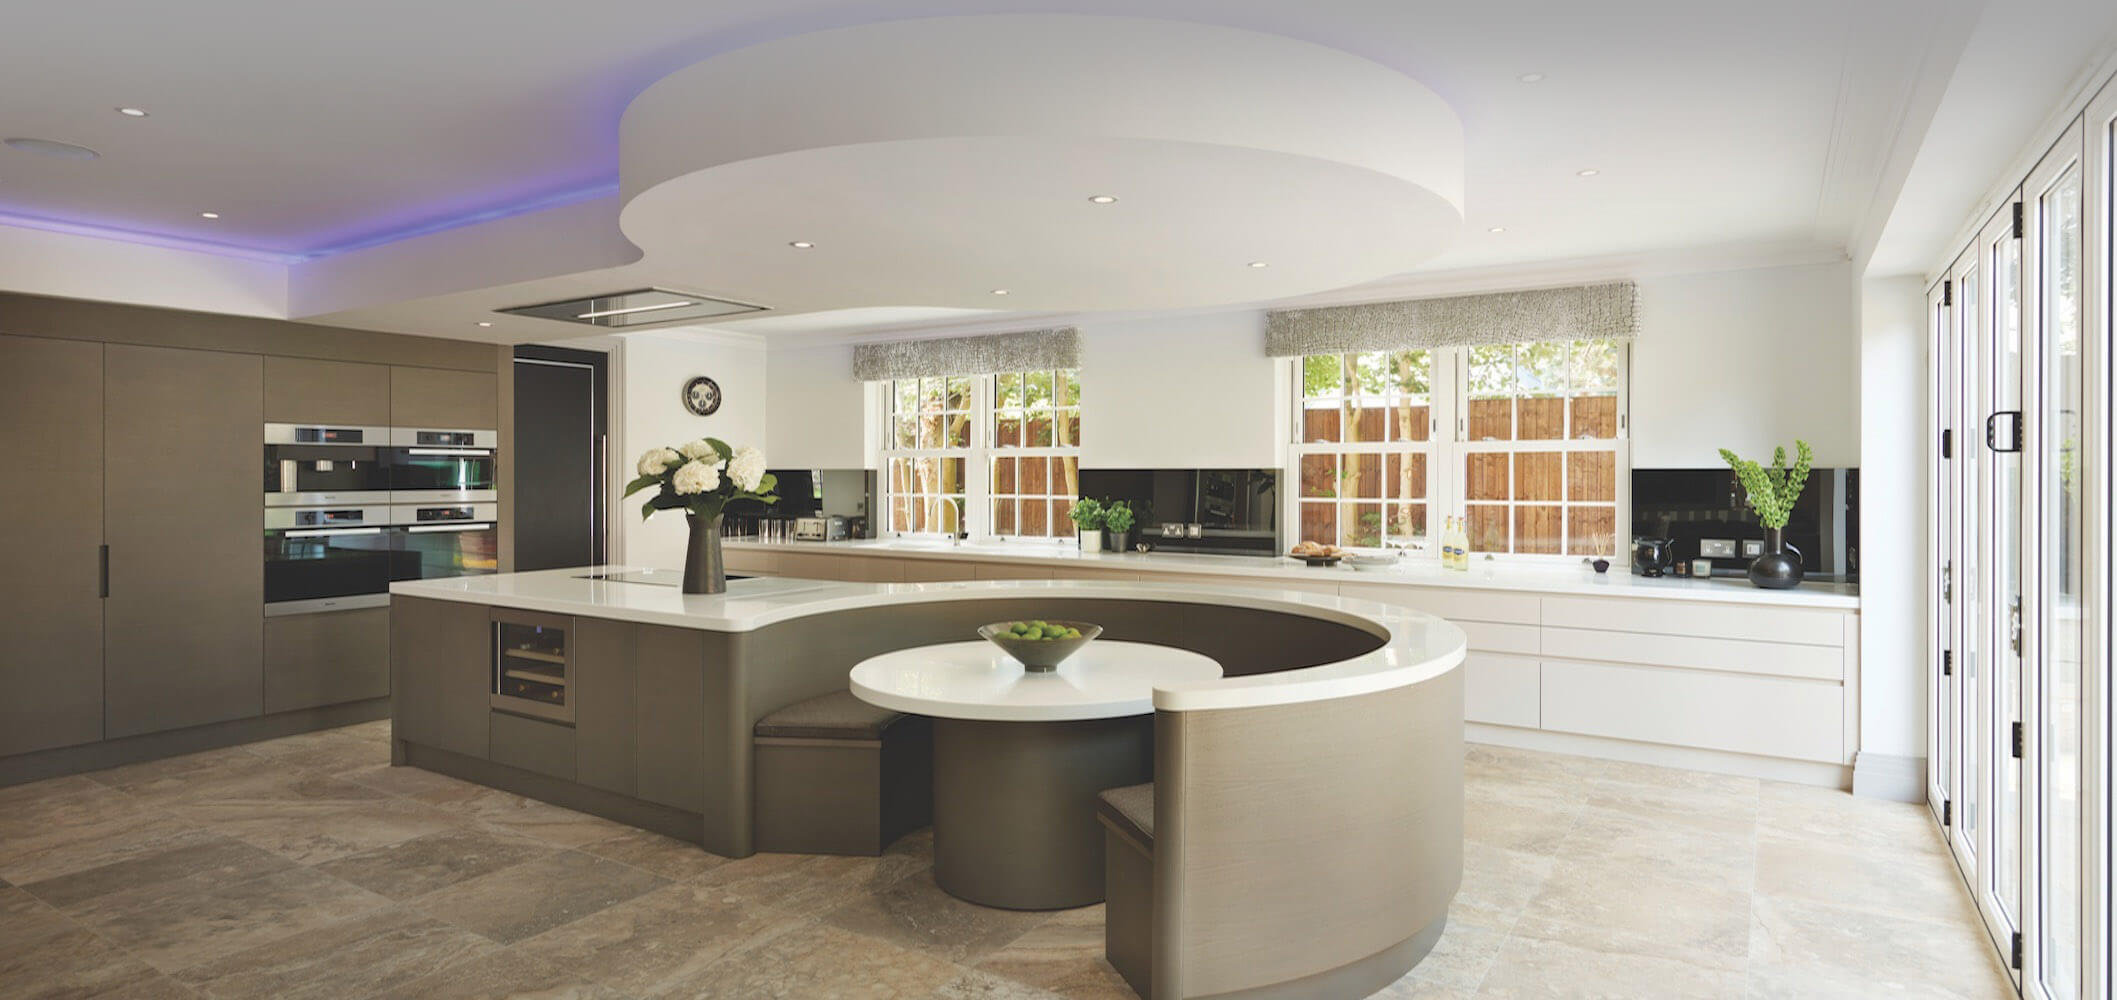 20 state of the art modern kitchen designs by reeva design on kitchen remodeling and design ideas hgtv id=74485